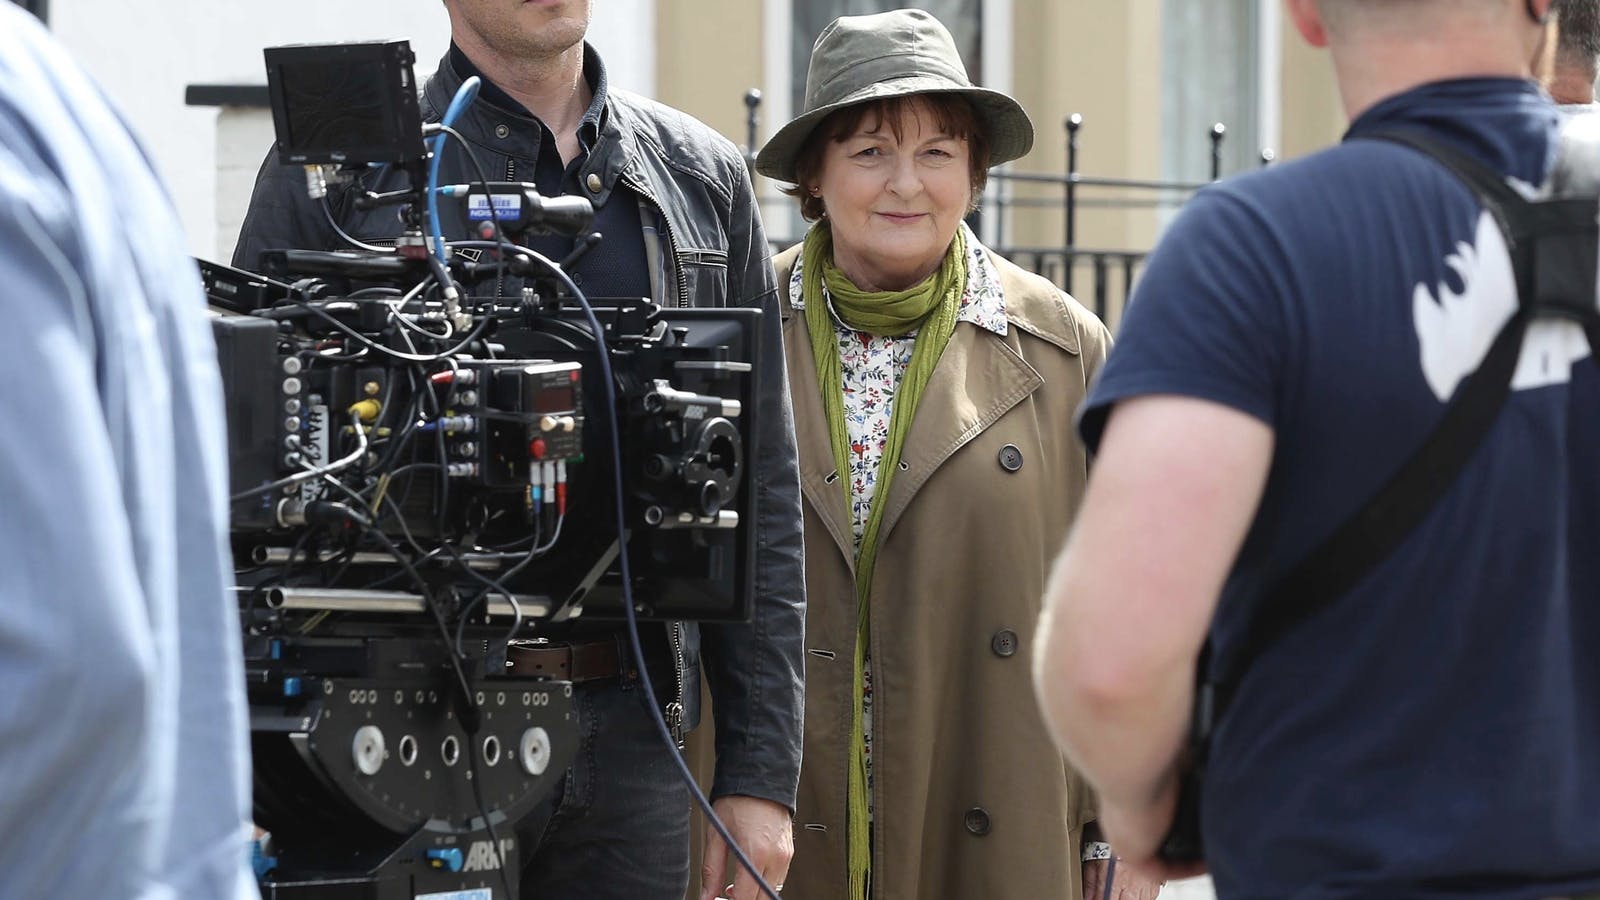 """Actress Brenda Blethyn during filming of the police drama """"Vera,"""" one of BritBox's popular shows. Photo by AP"""